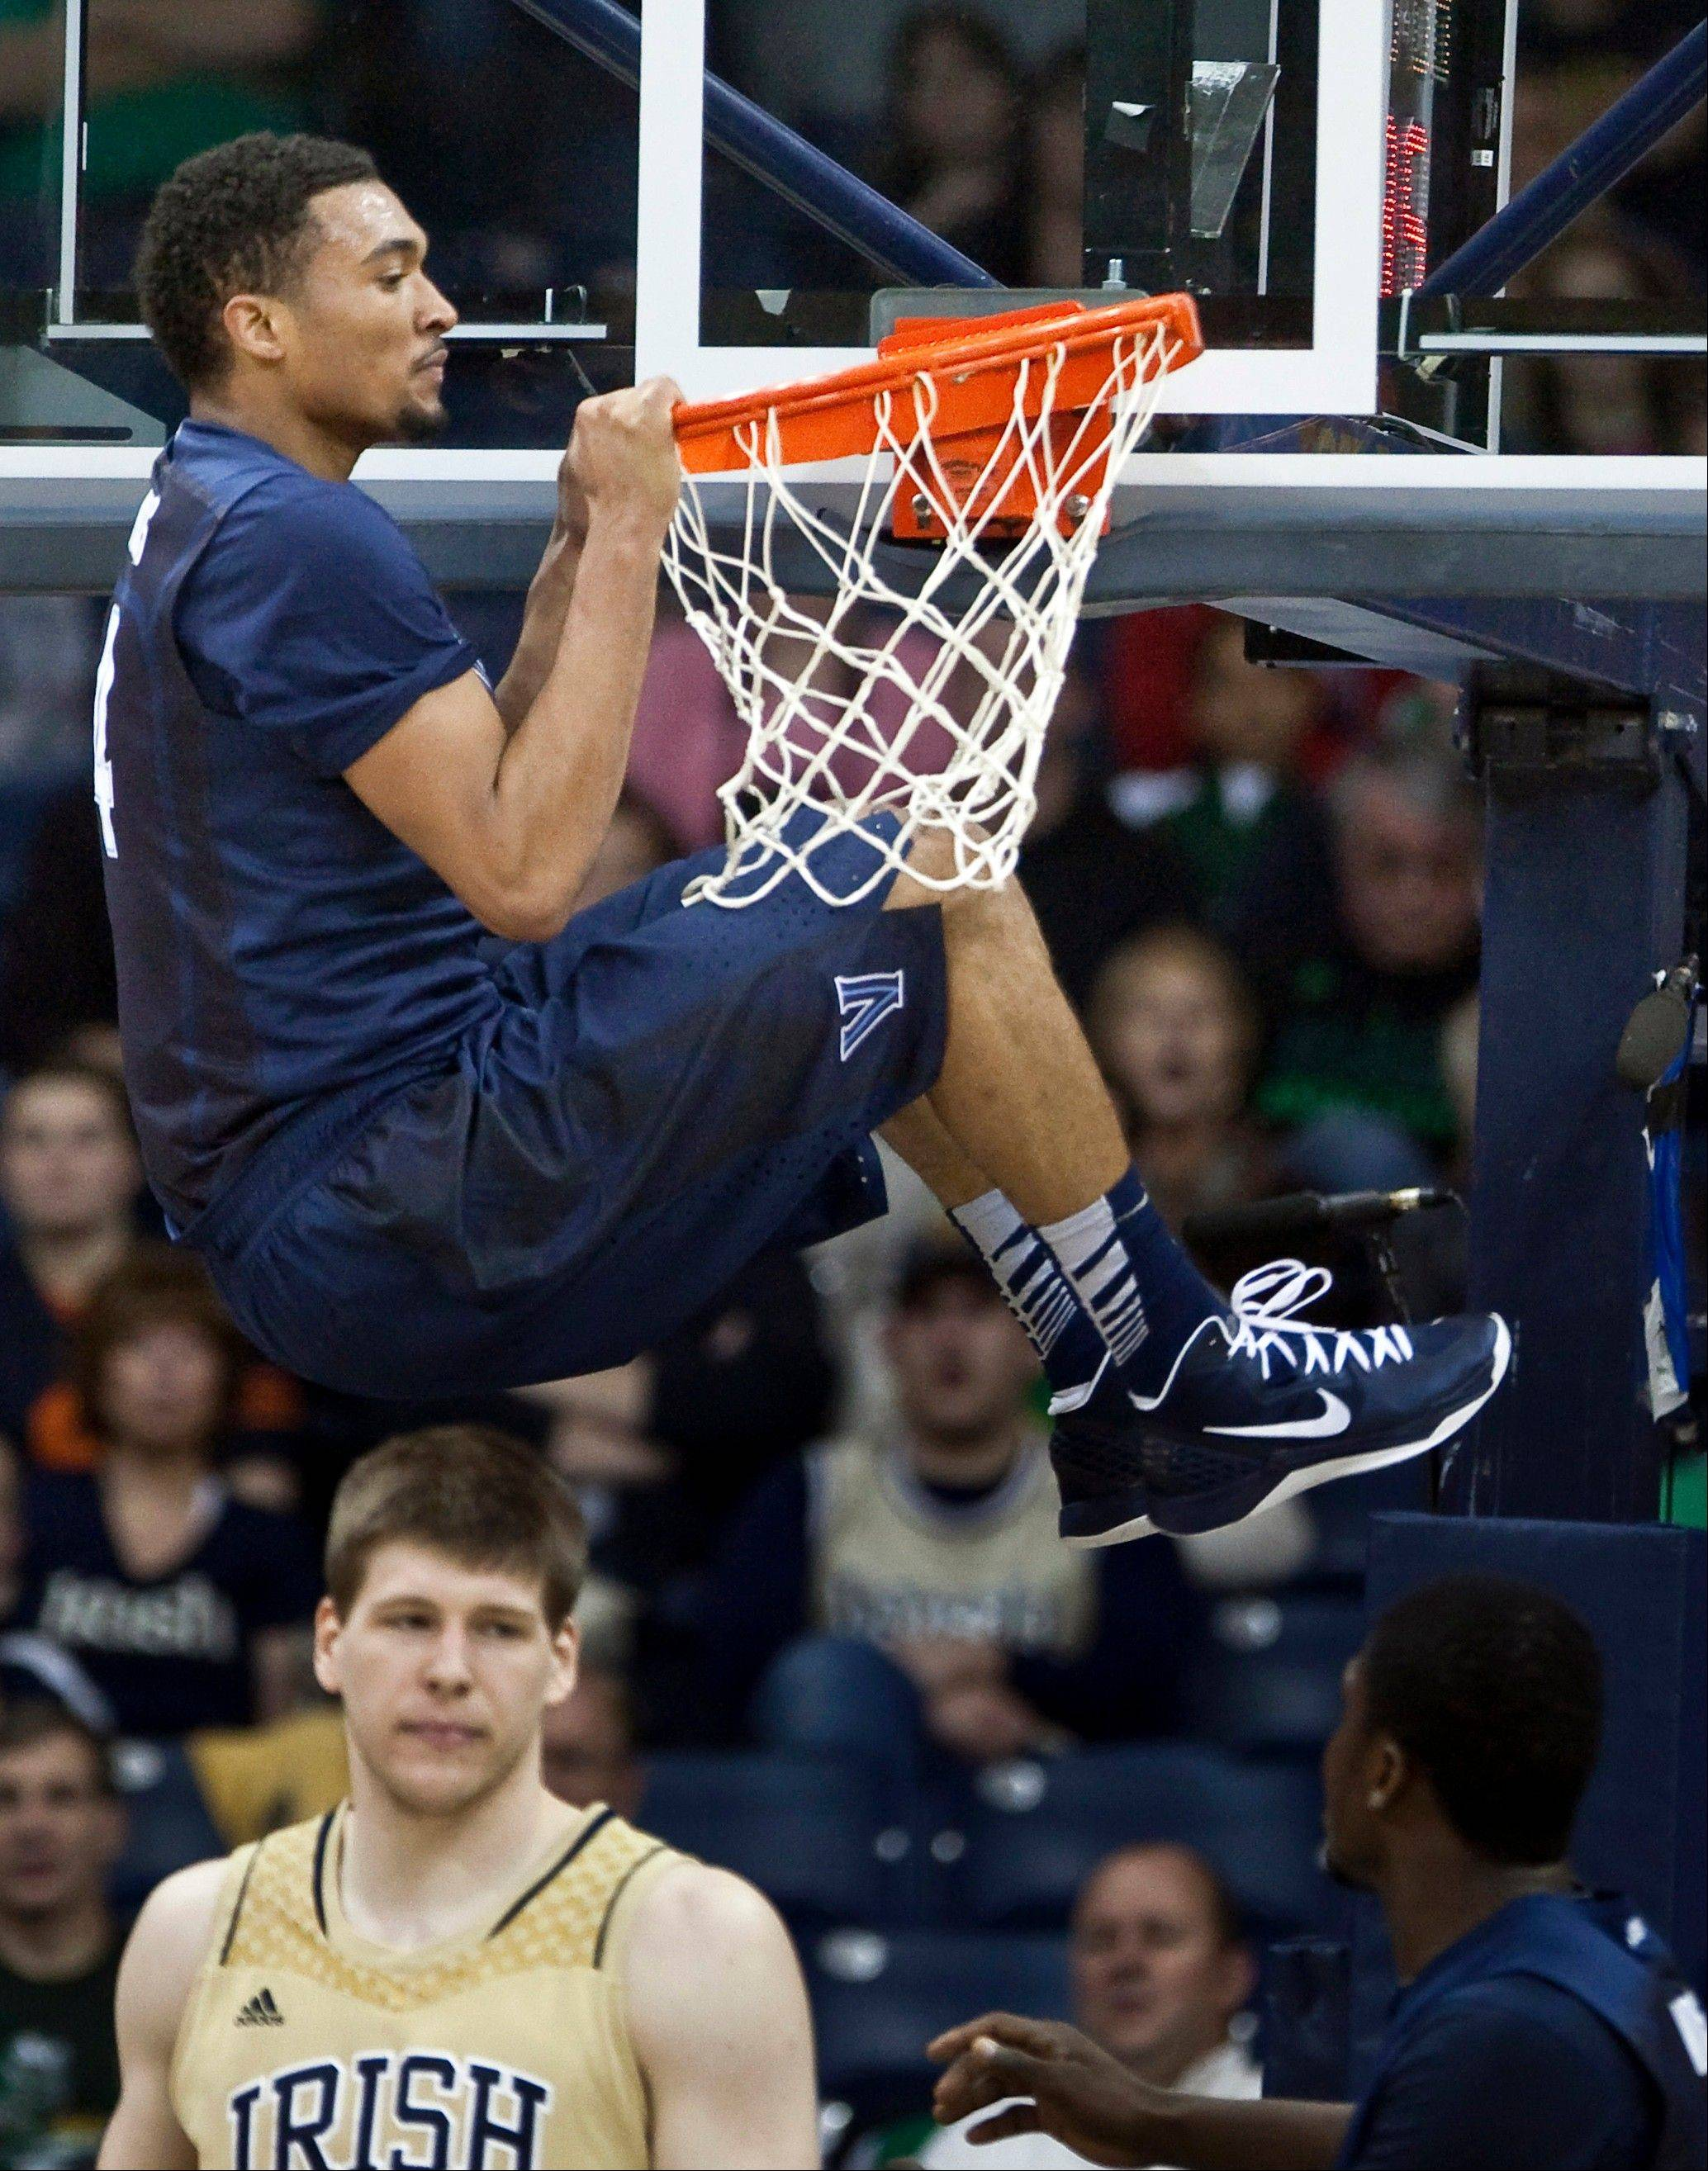 Villanova's Darrun Hilliard hangs on the rim following a dunk against Notre Dame Wednesday night in South Bend. Notre Dame beat Villa Nova 65-60.